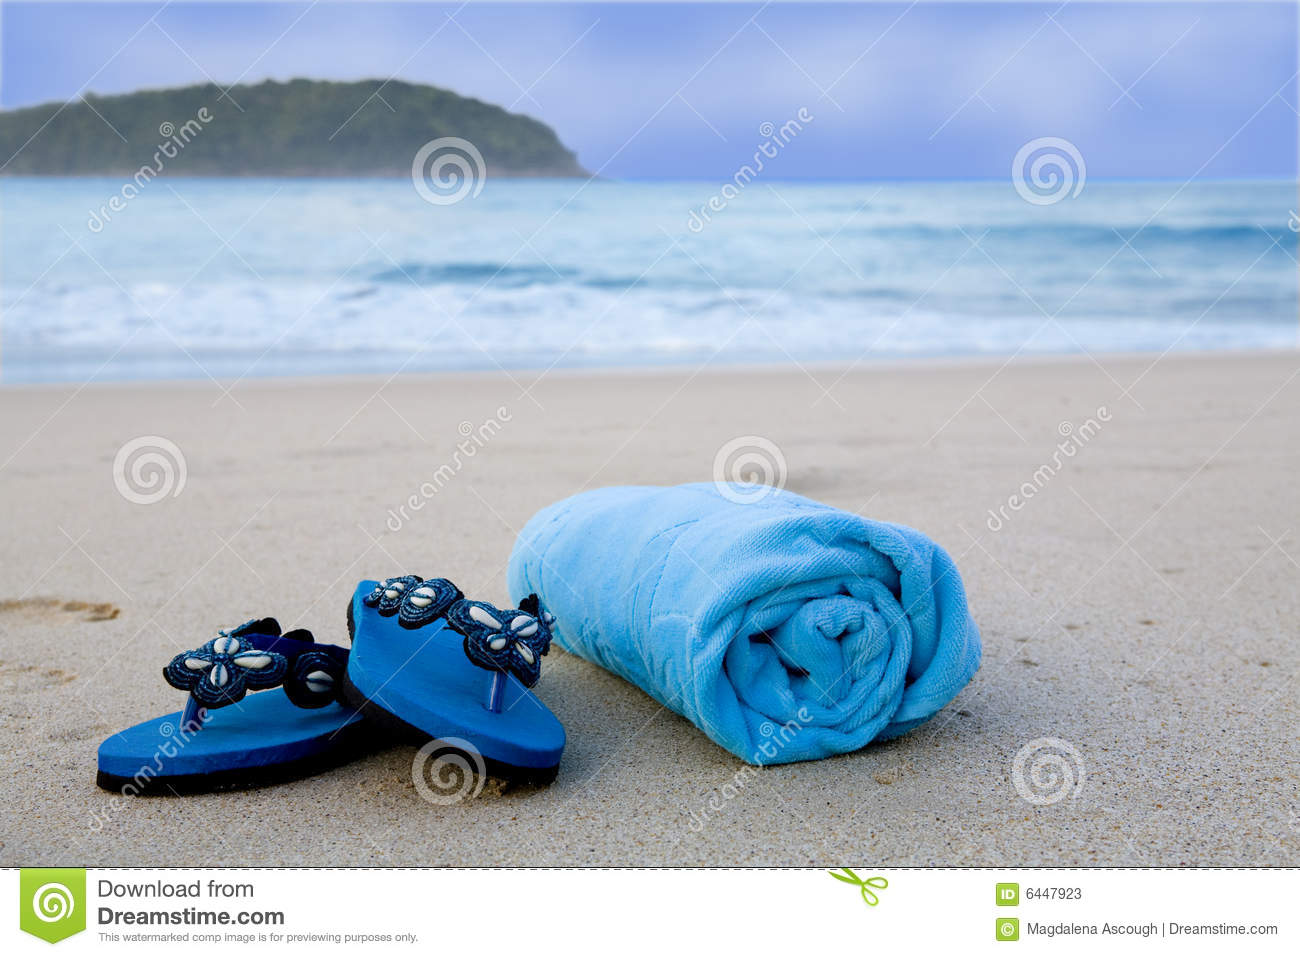 ce5dd041c4765 Flip Flops And Towel On The Beach Stock Image - Image of summer ...